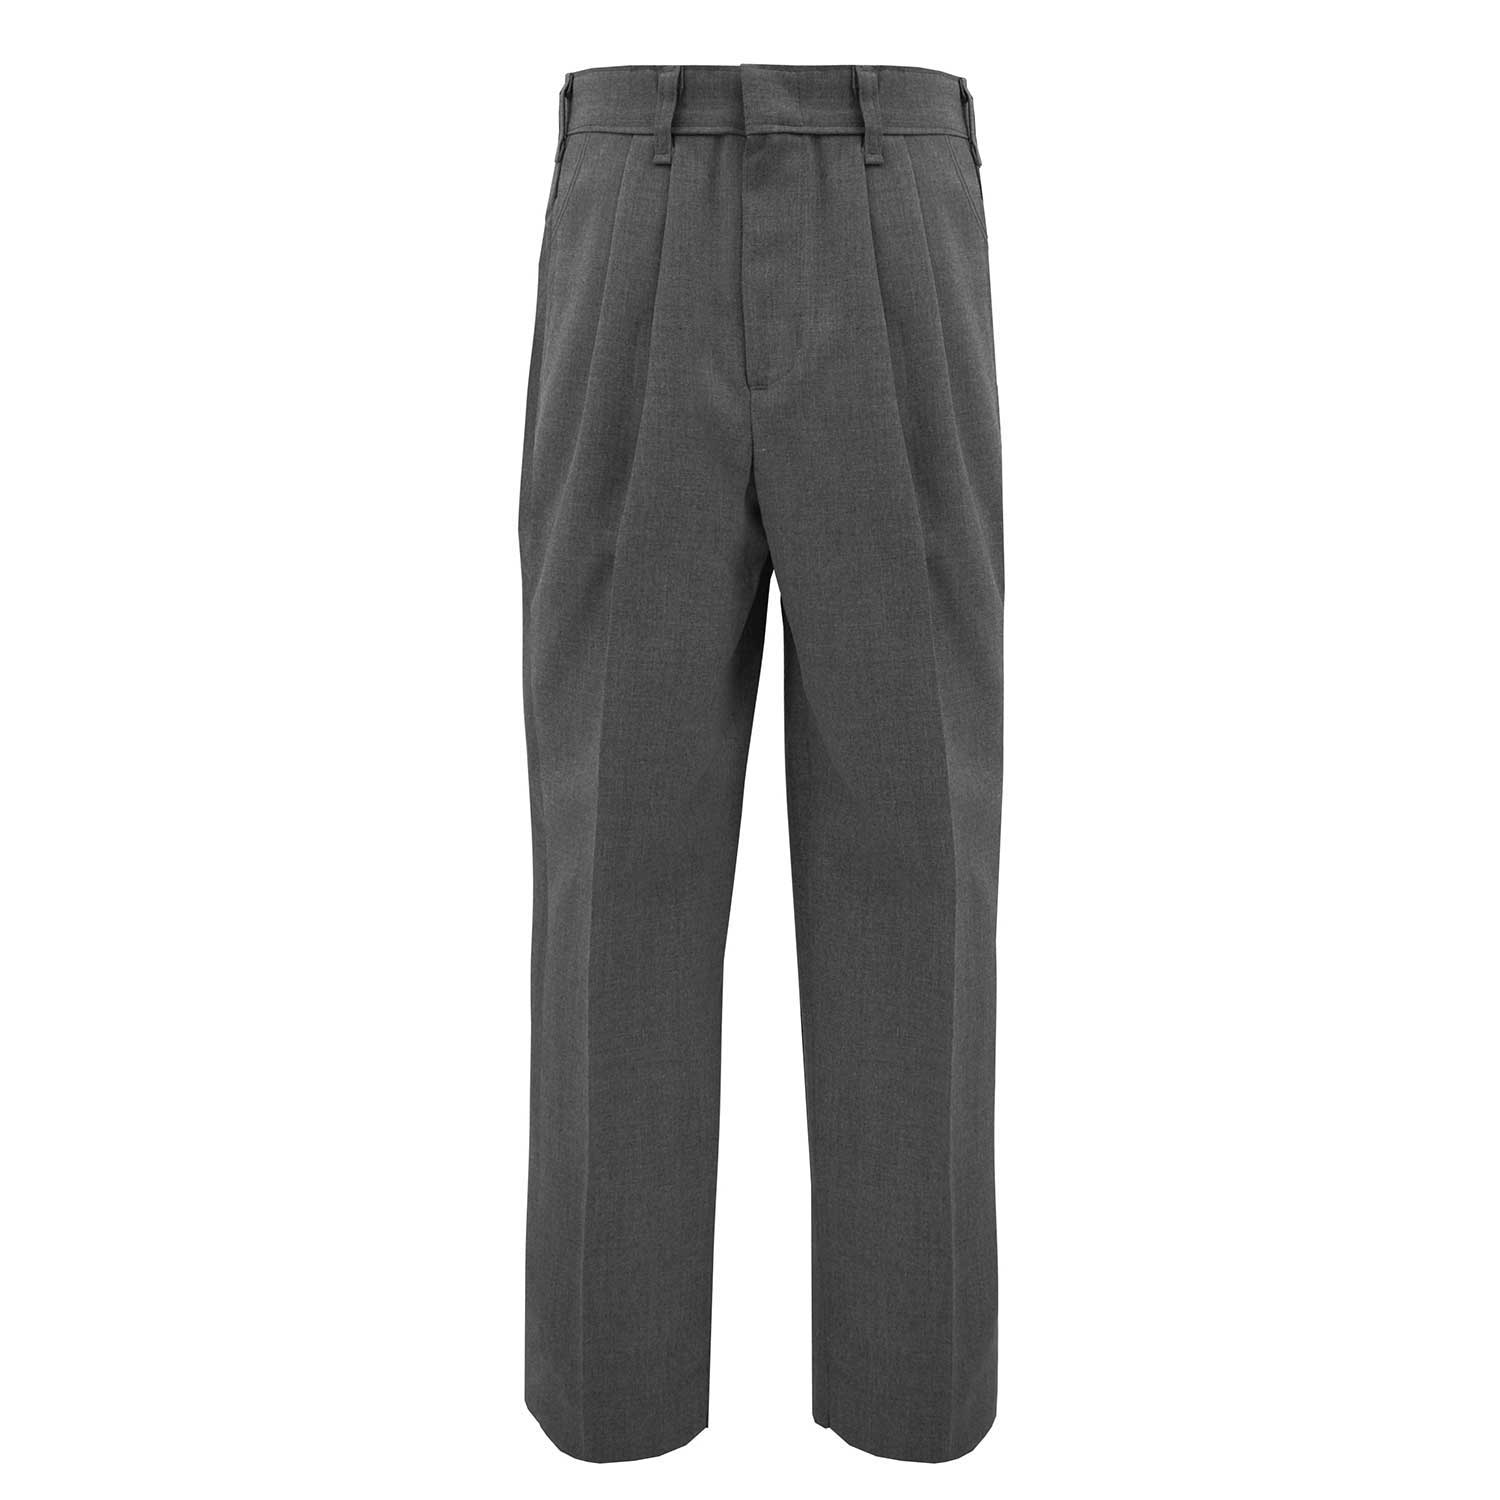 Boy's Pleated Flannel Dress Pants - Discounted!